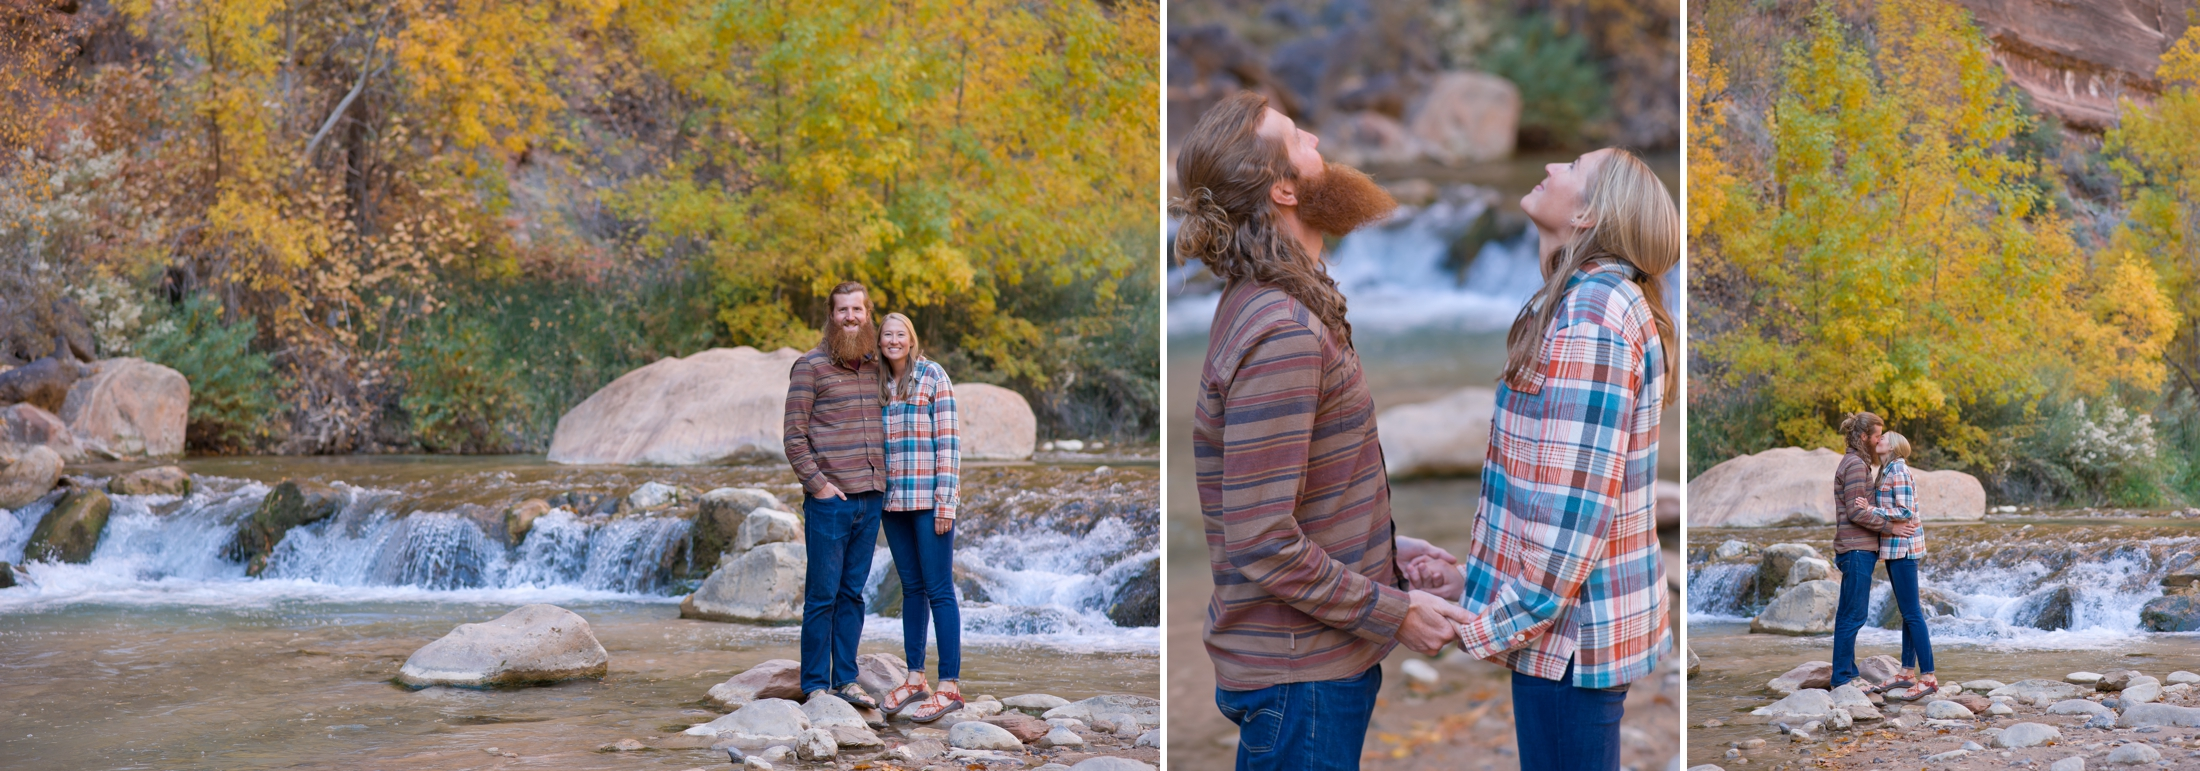 Elope in Zion National Park, Engagement, Wedding Photographer | KLEM Studios